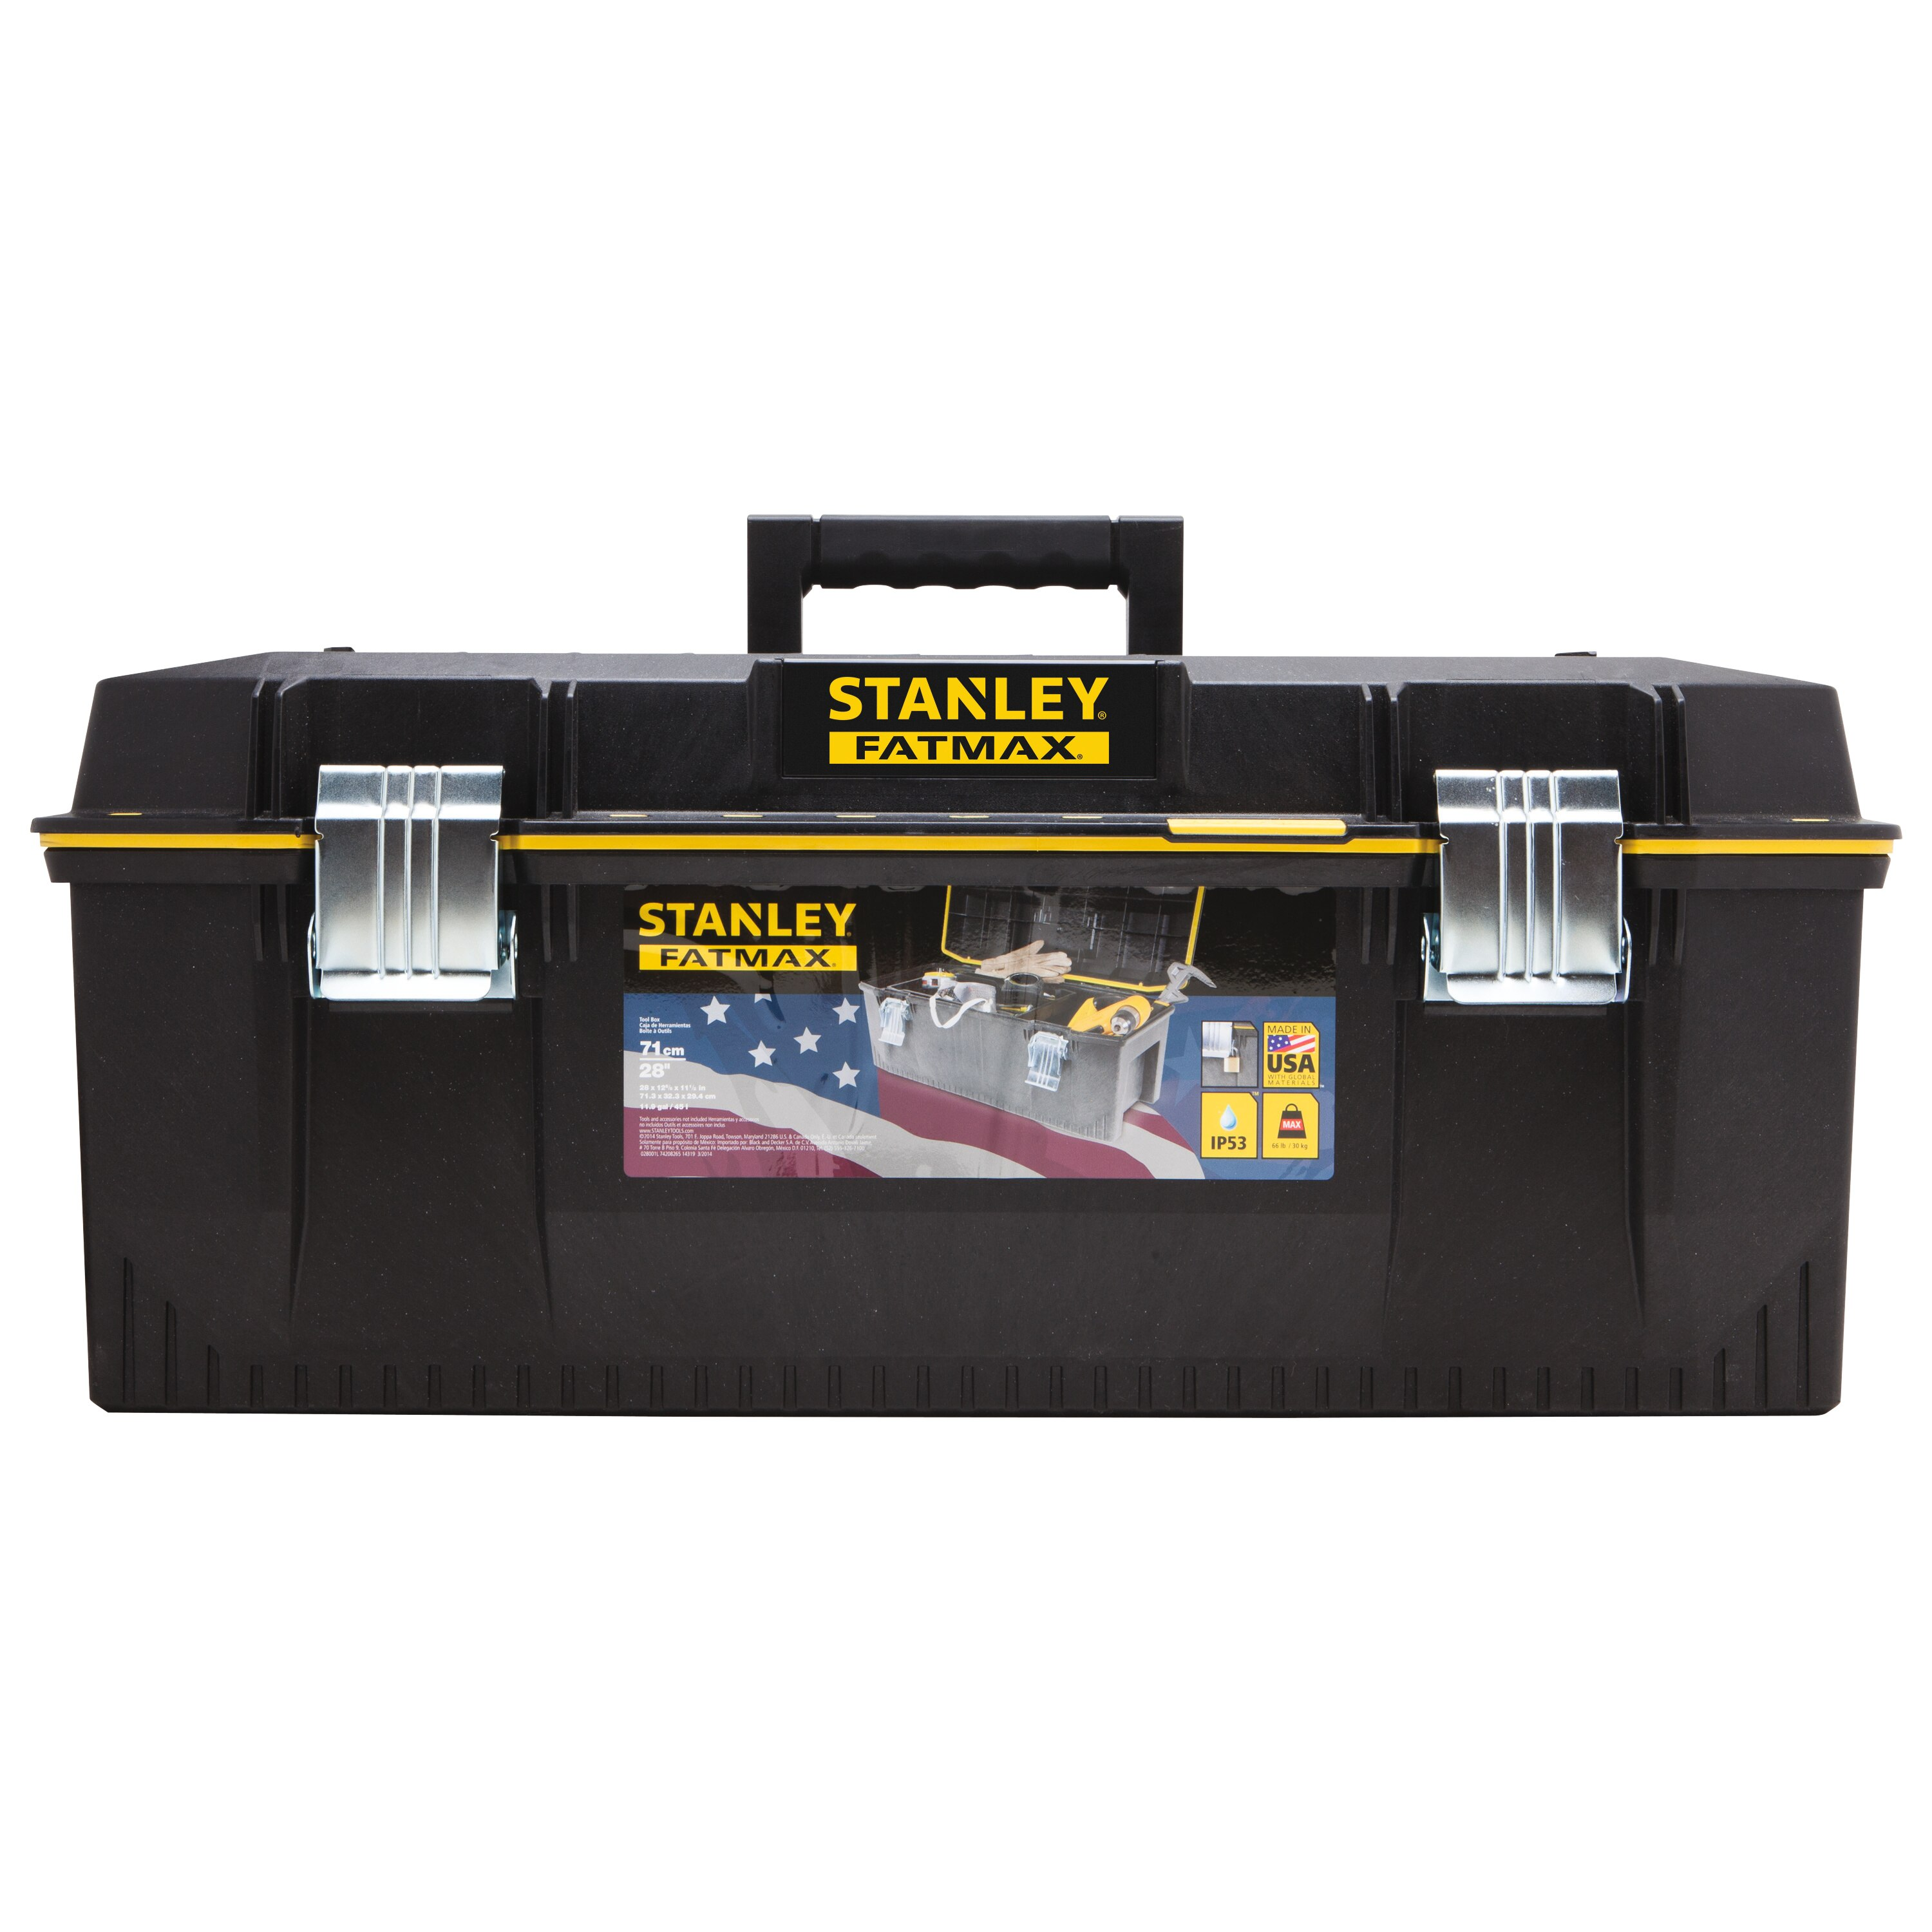 Stanley Tools - 28 in FATMAX Structural Foam Toolbox - 028001L